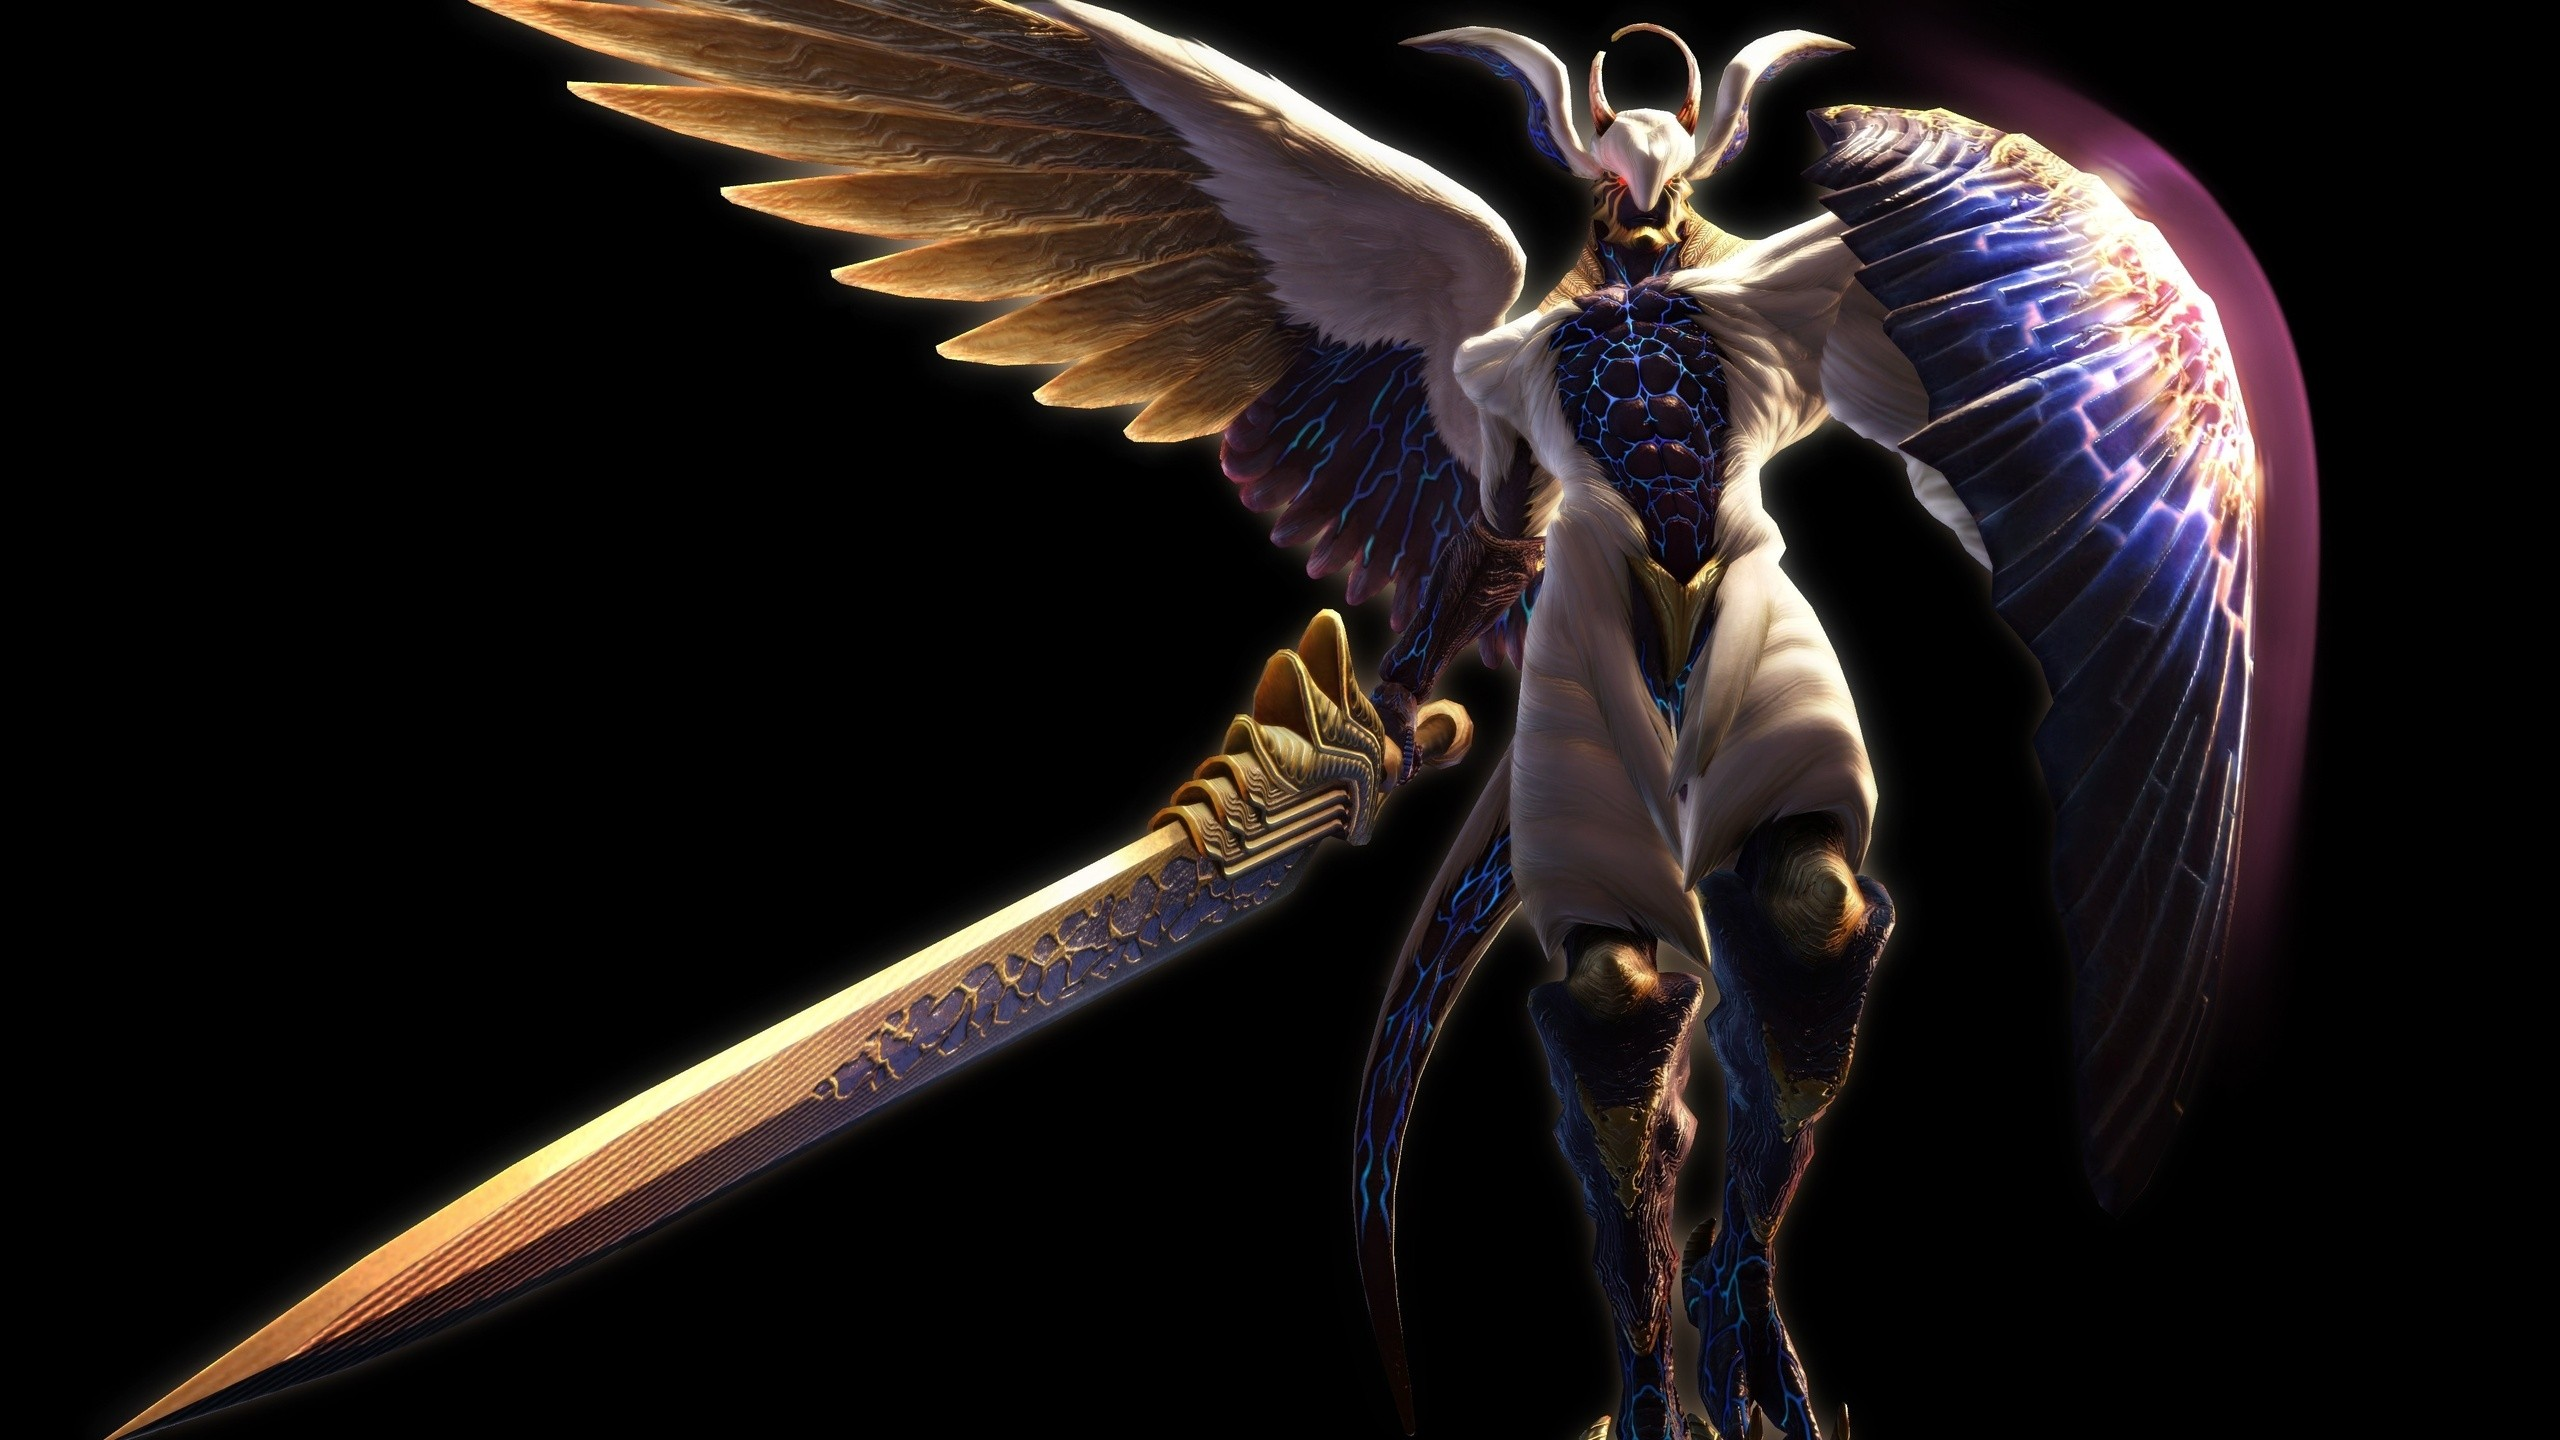 Fantasy Devil May Cry angel warrior weapons sword ...